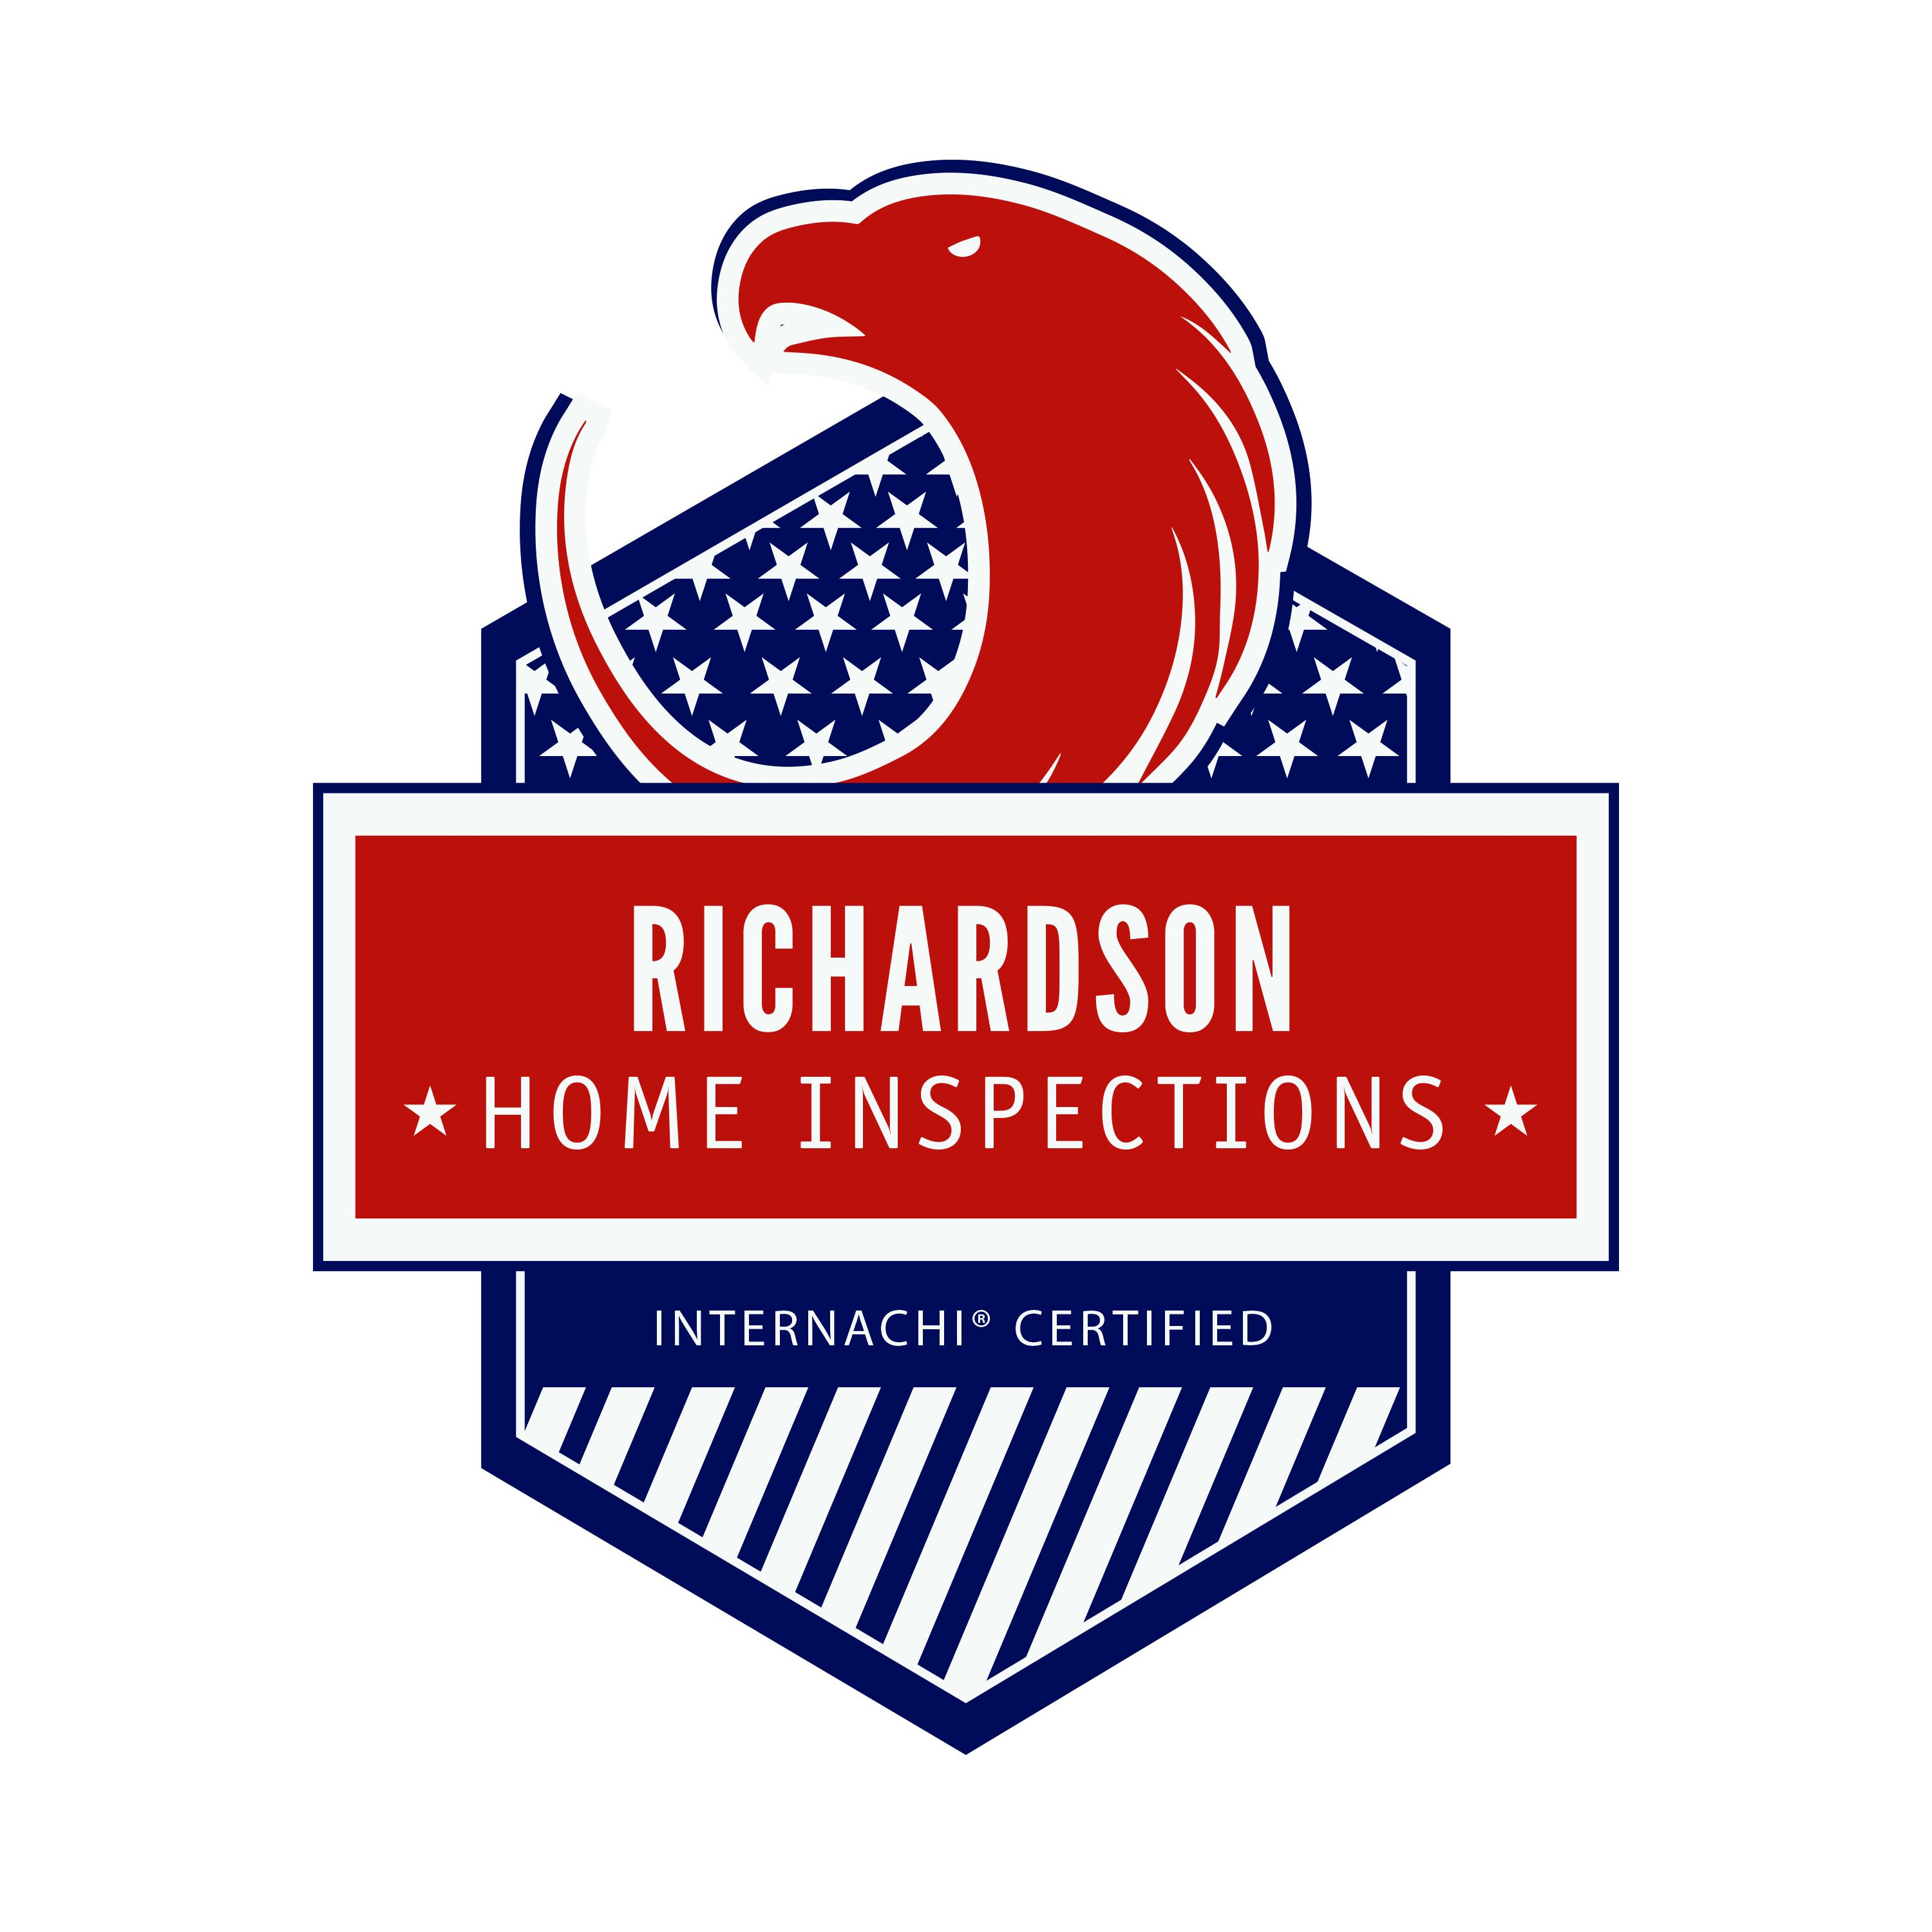 Richardson Home Inspections